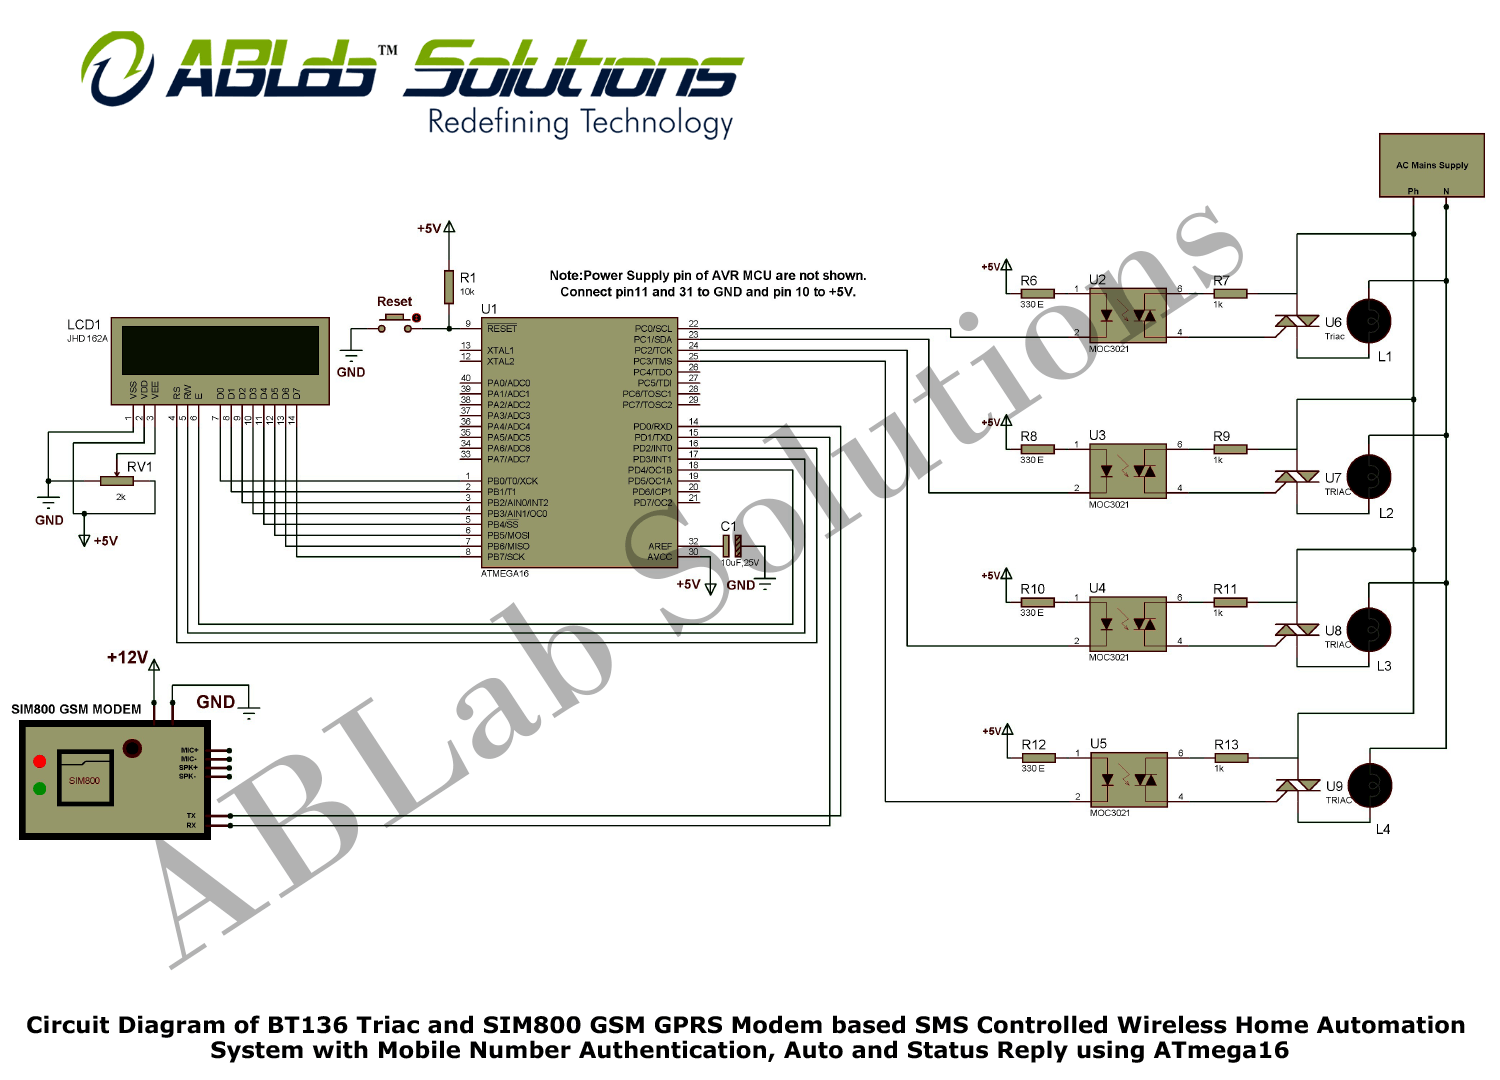 Circuit diagram of bt136 triac and sim800 gsm gprs modem based sms circuit diagram of bt136 triac and sim800 gsm gprs modem based sms controlled wireless home automation pooptronica